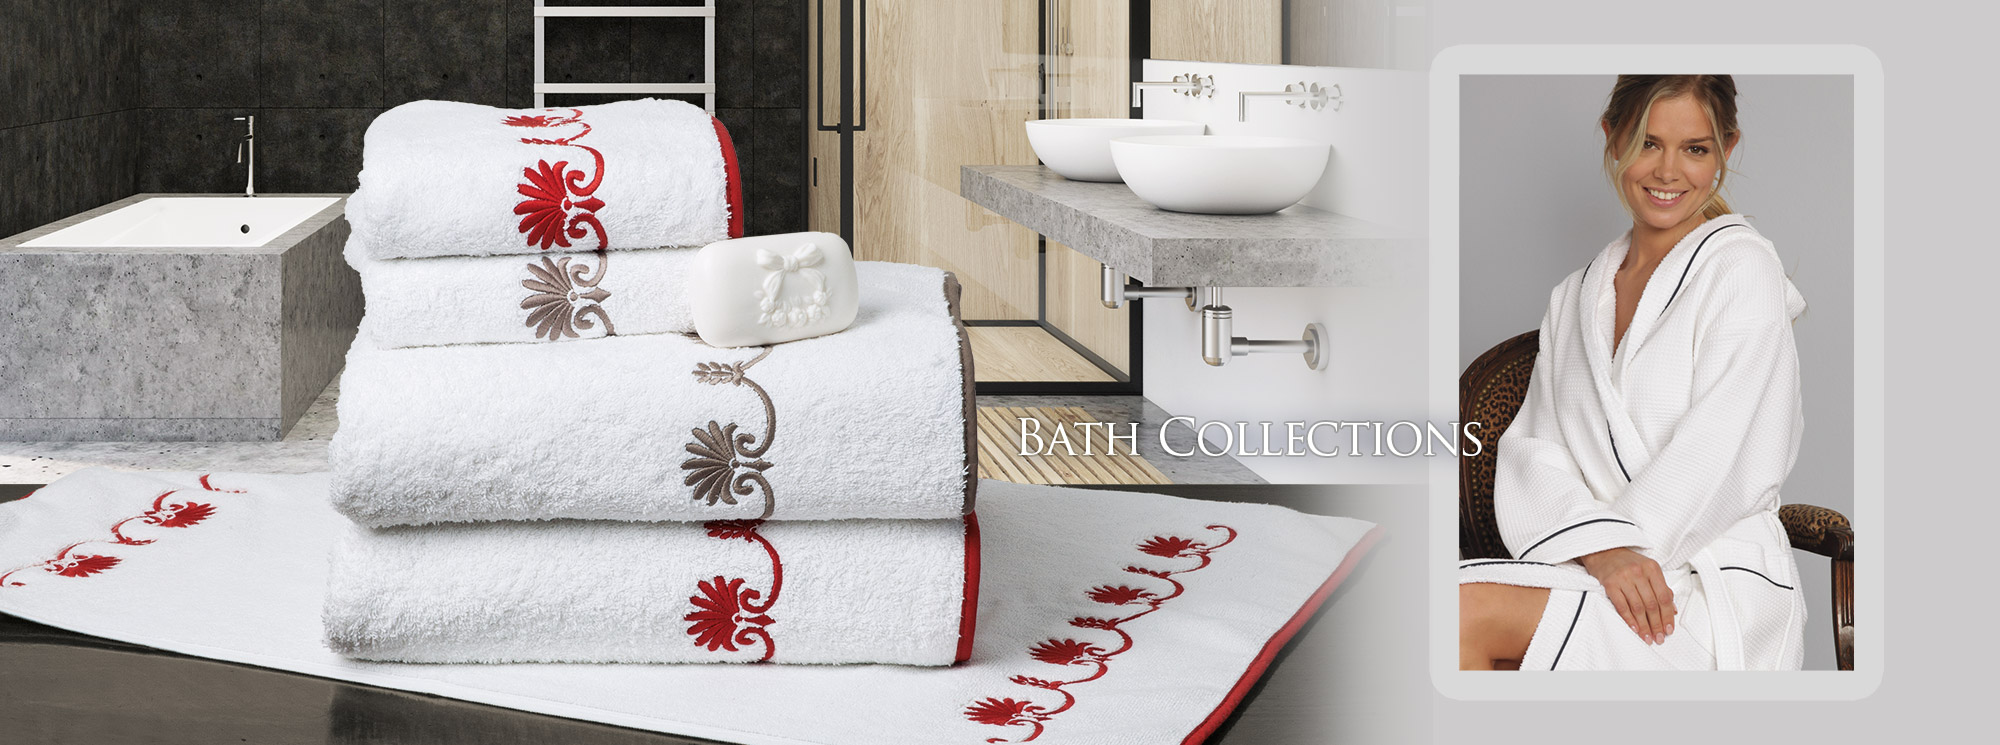 Bath Collections